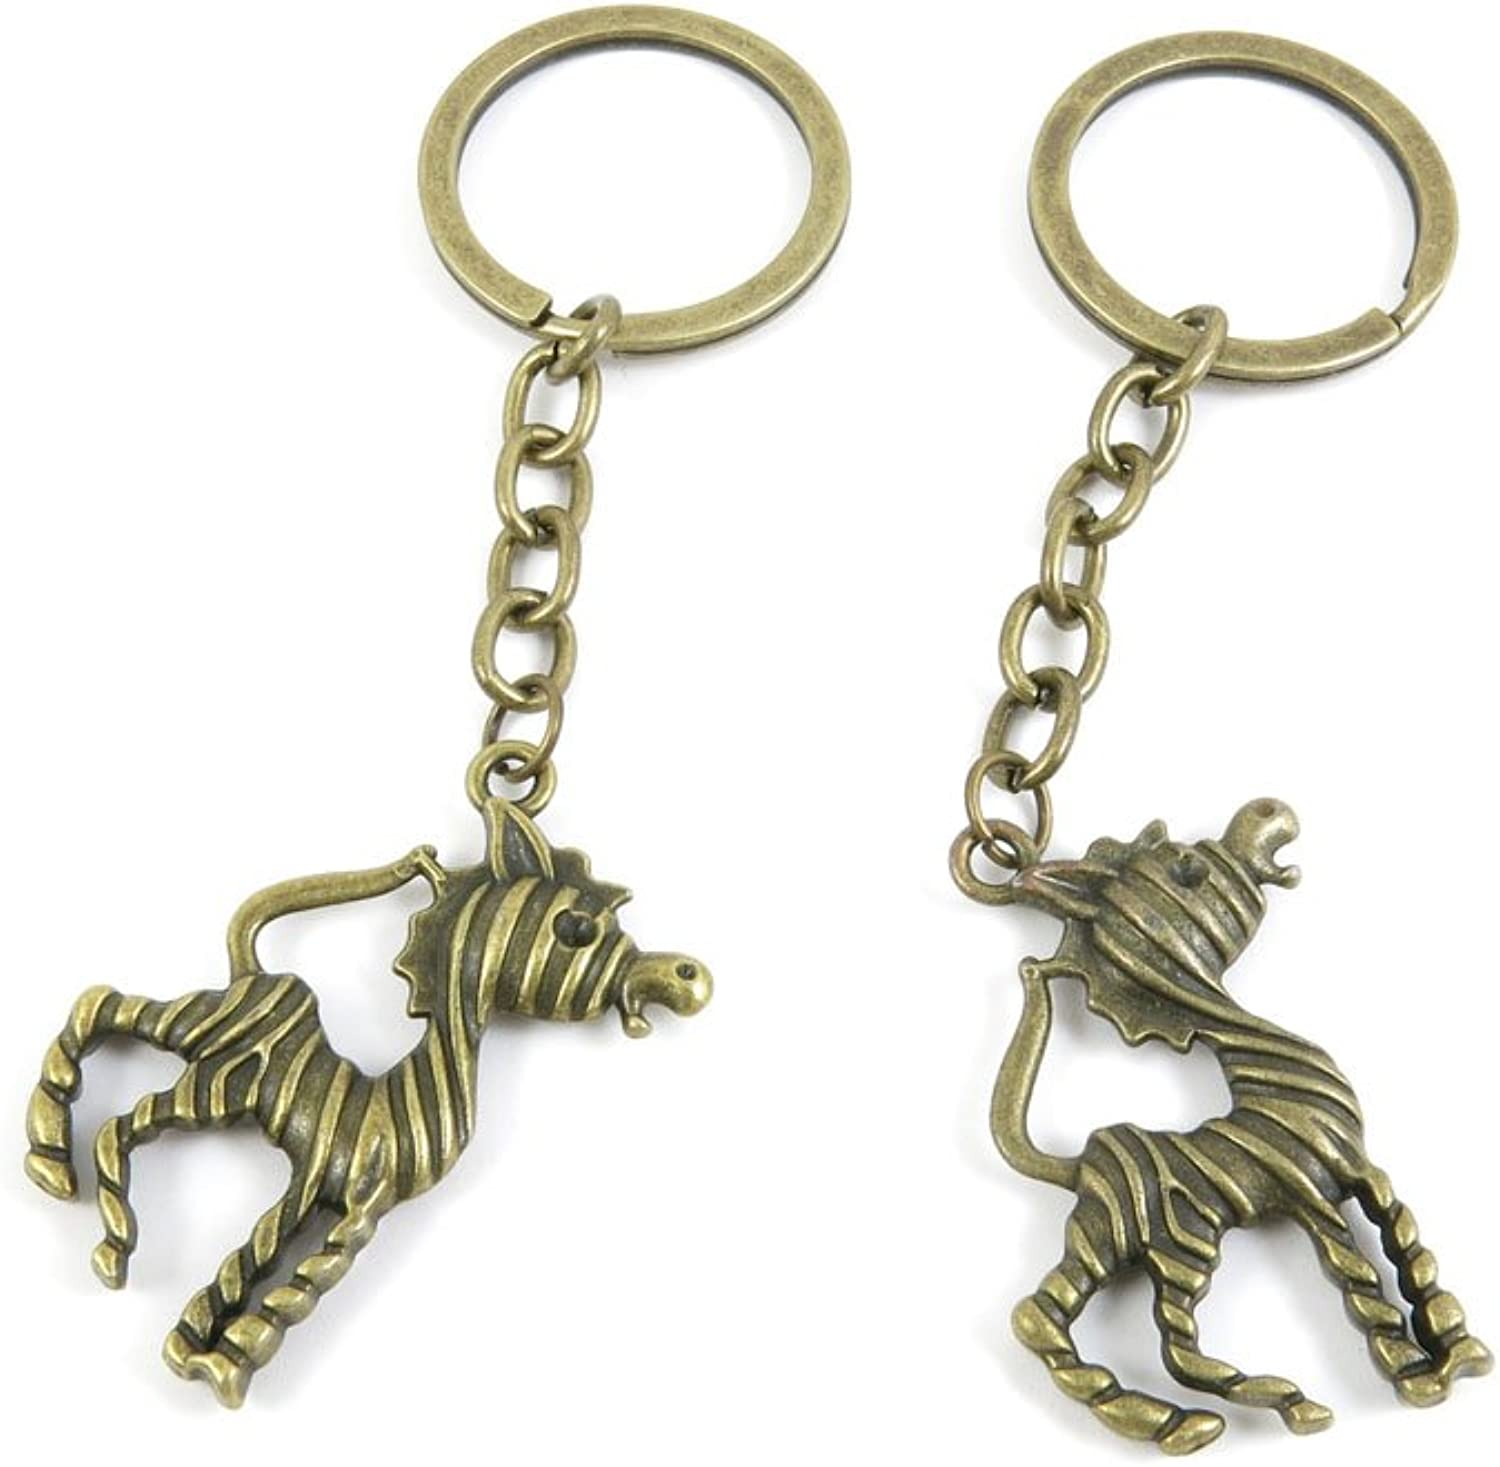 100 PCS Keyrings Keychains Key Ring Chains Tags Jewelry Findings Clasps Buckles Supplies K0ZO6 Zebra